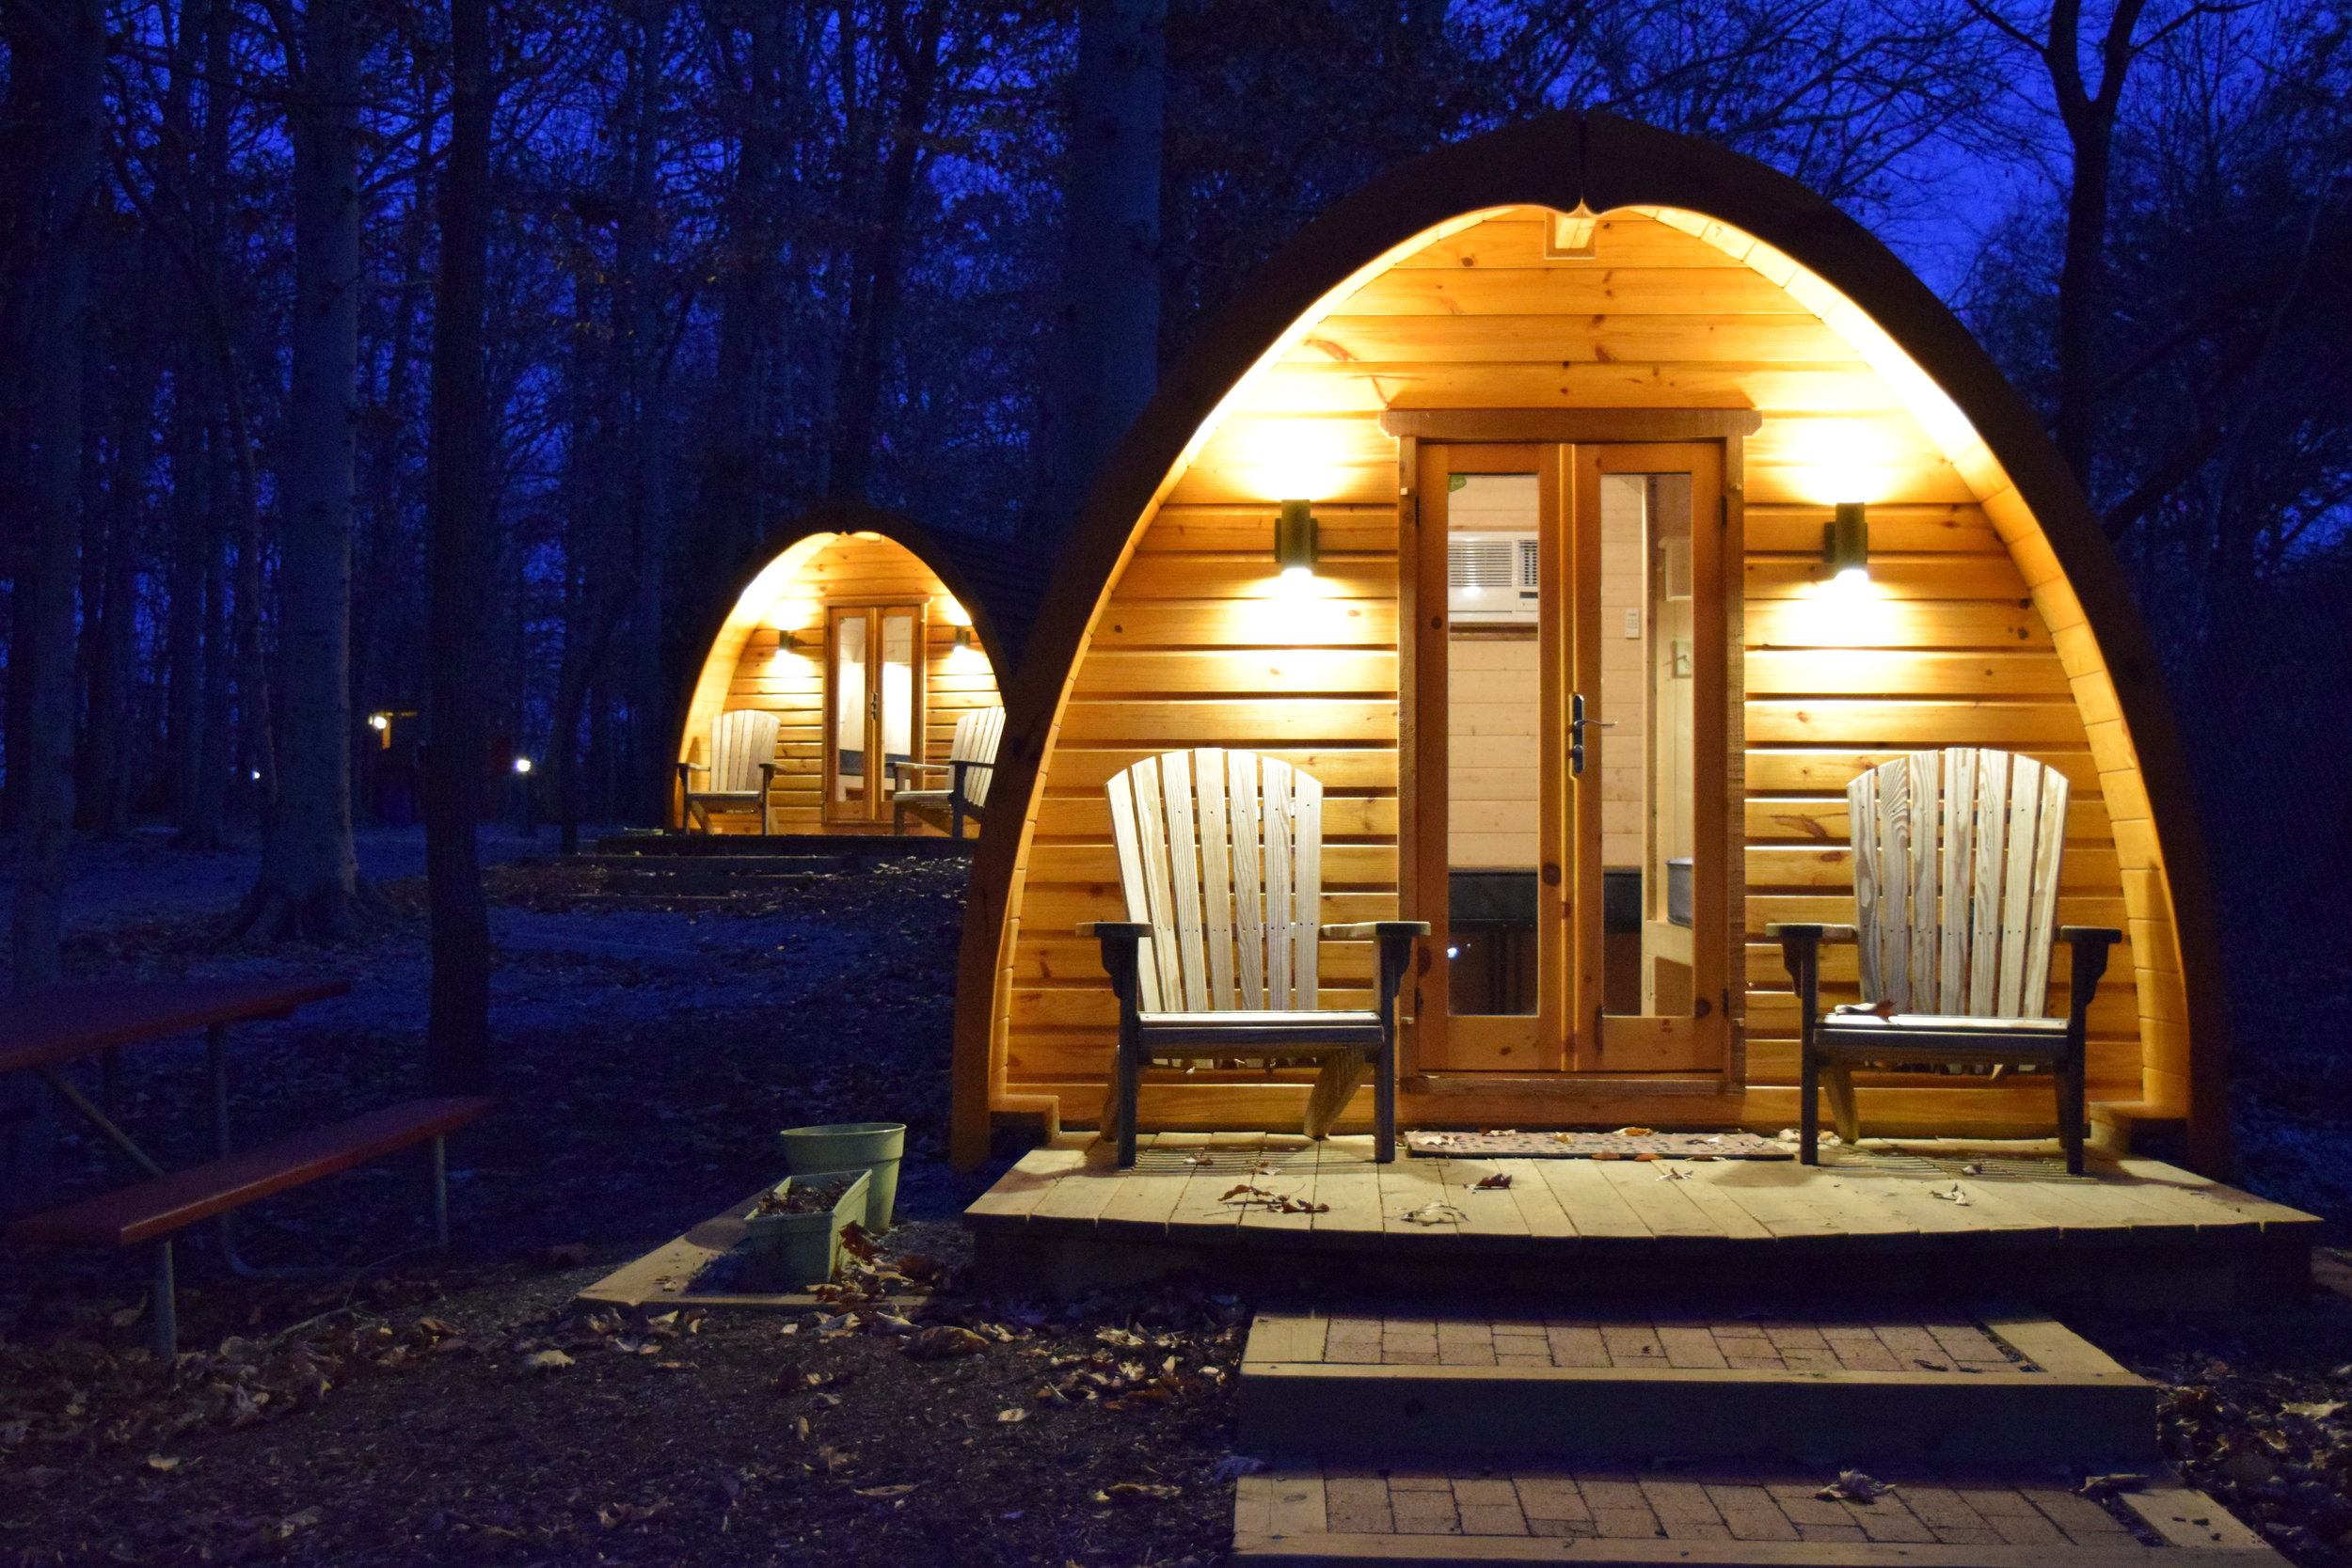 Glamping Pods at Night - Camping at Cherry Hill Park